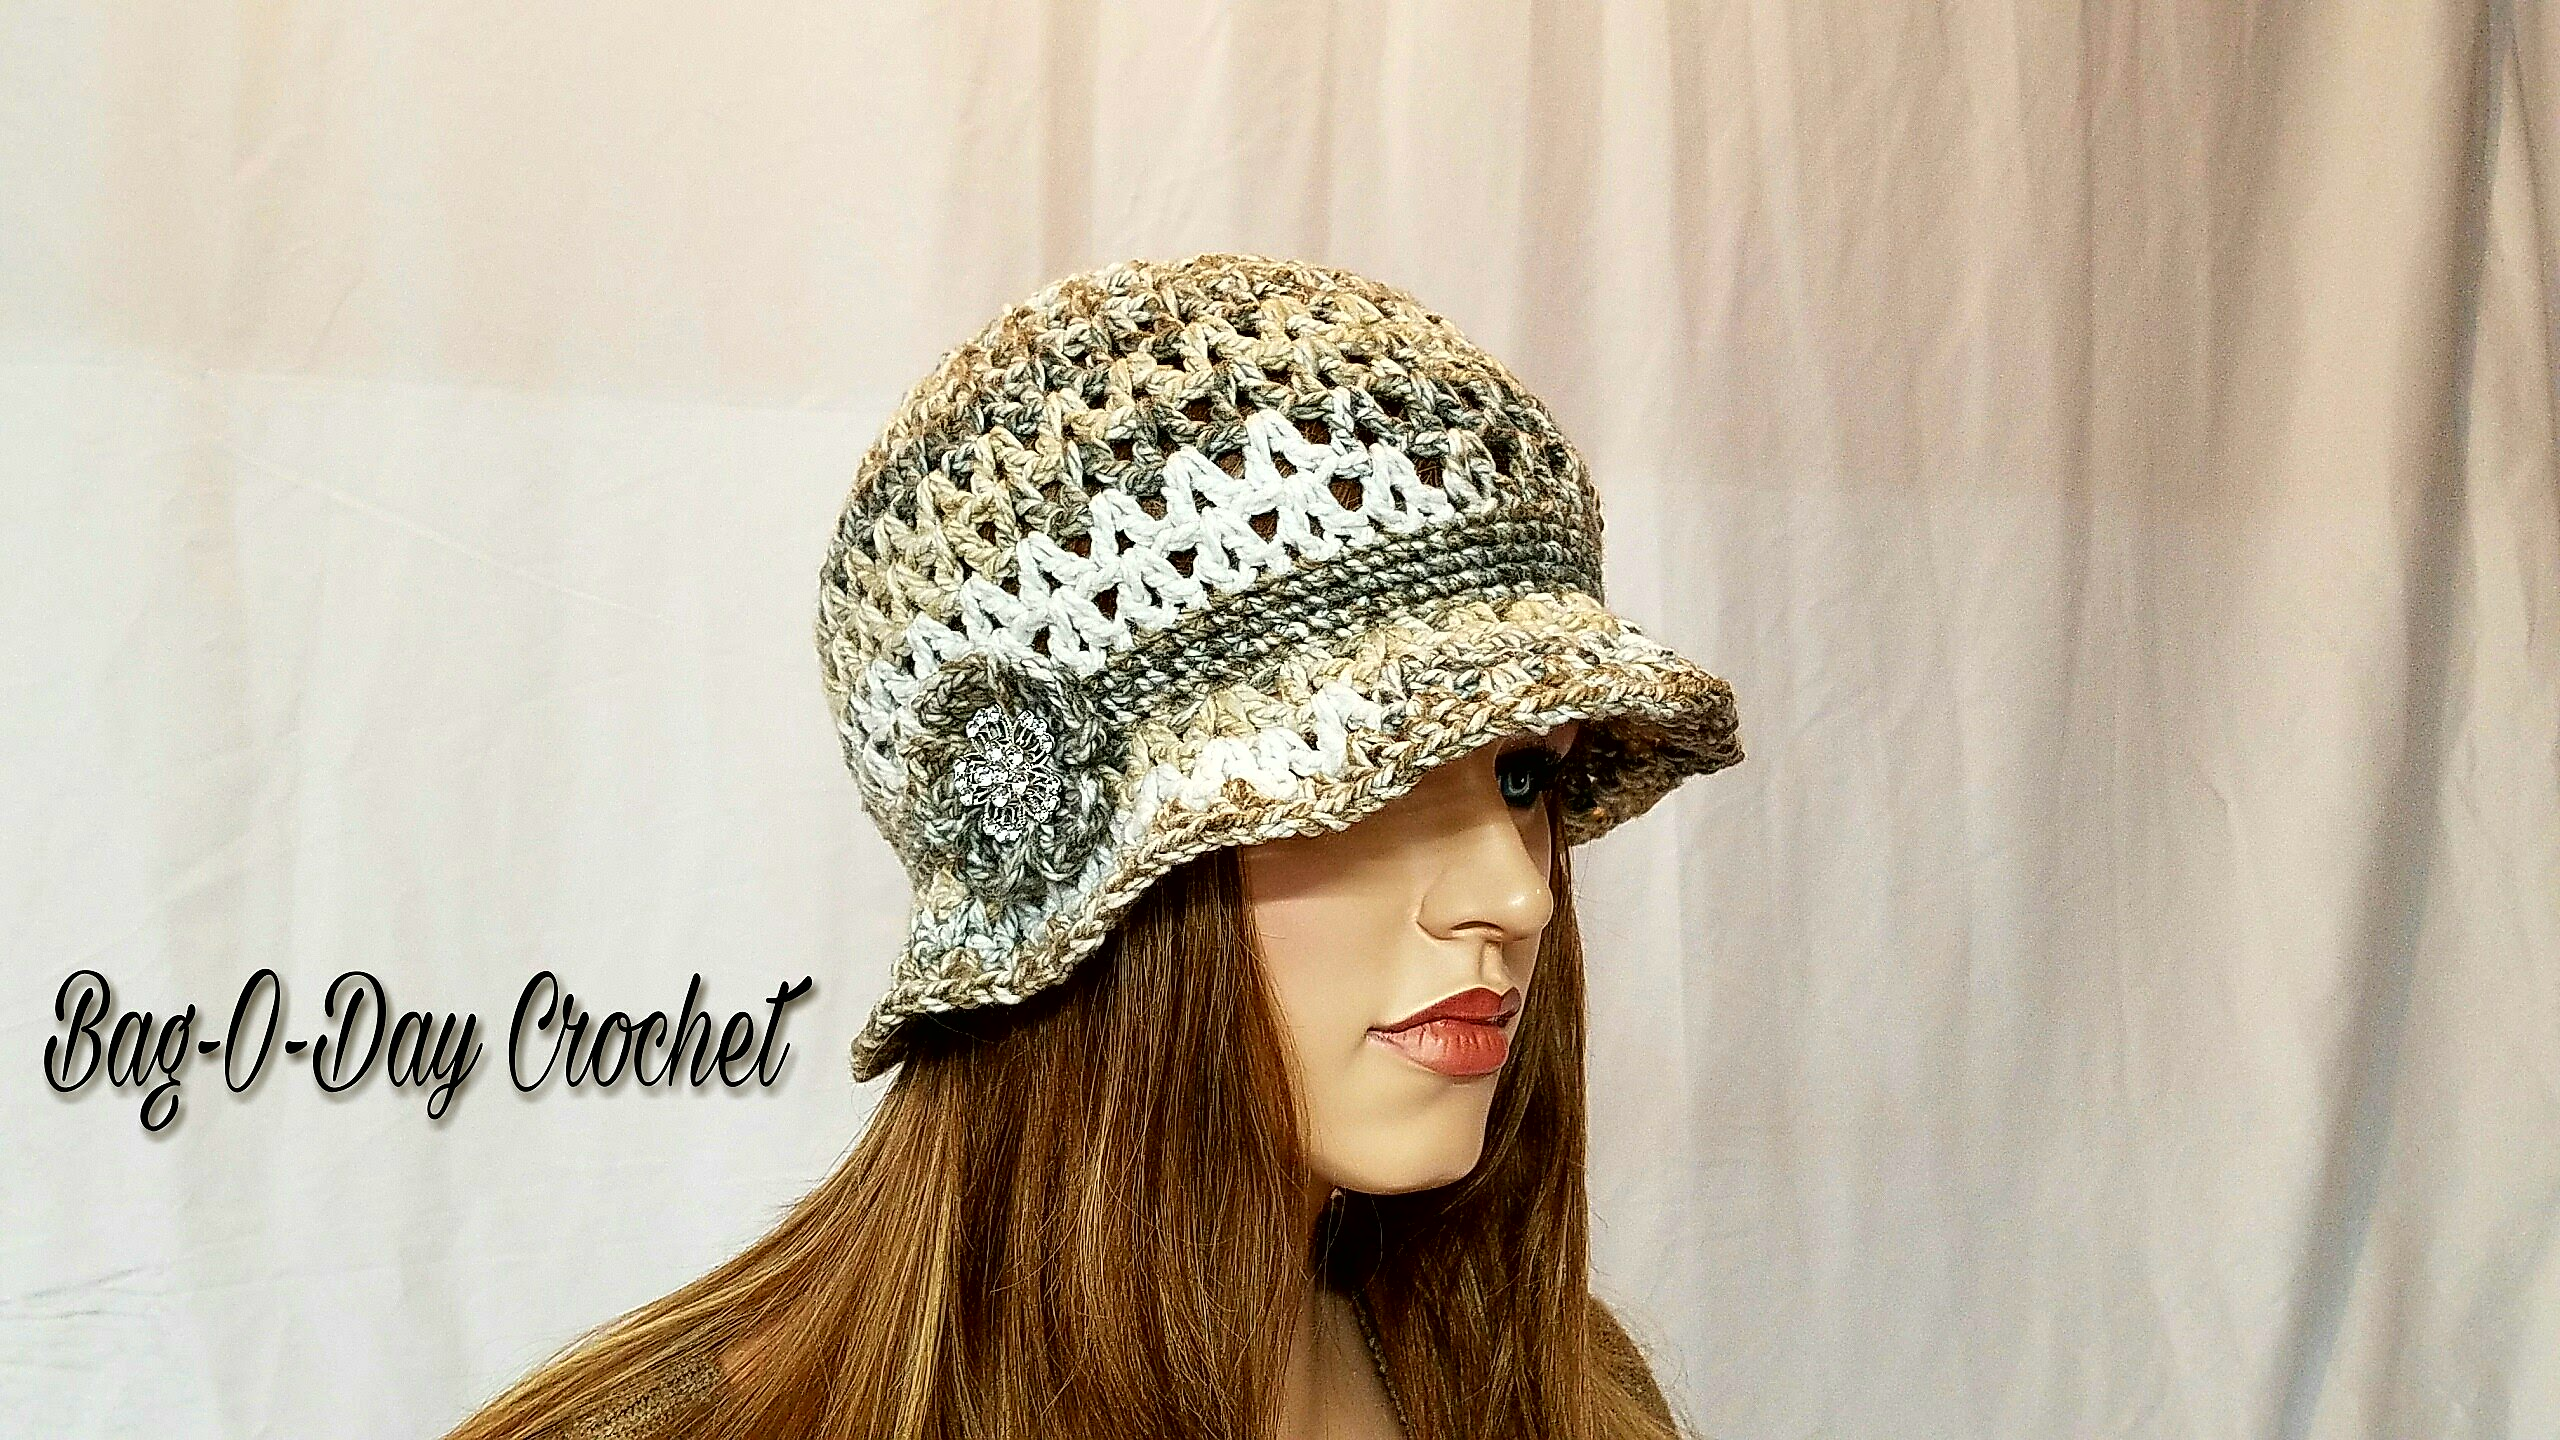 Crochet Hat Irish Rose Cloche Free Crochet Pattern Bagoday